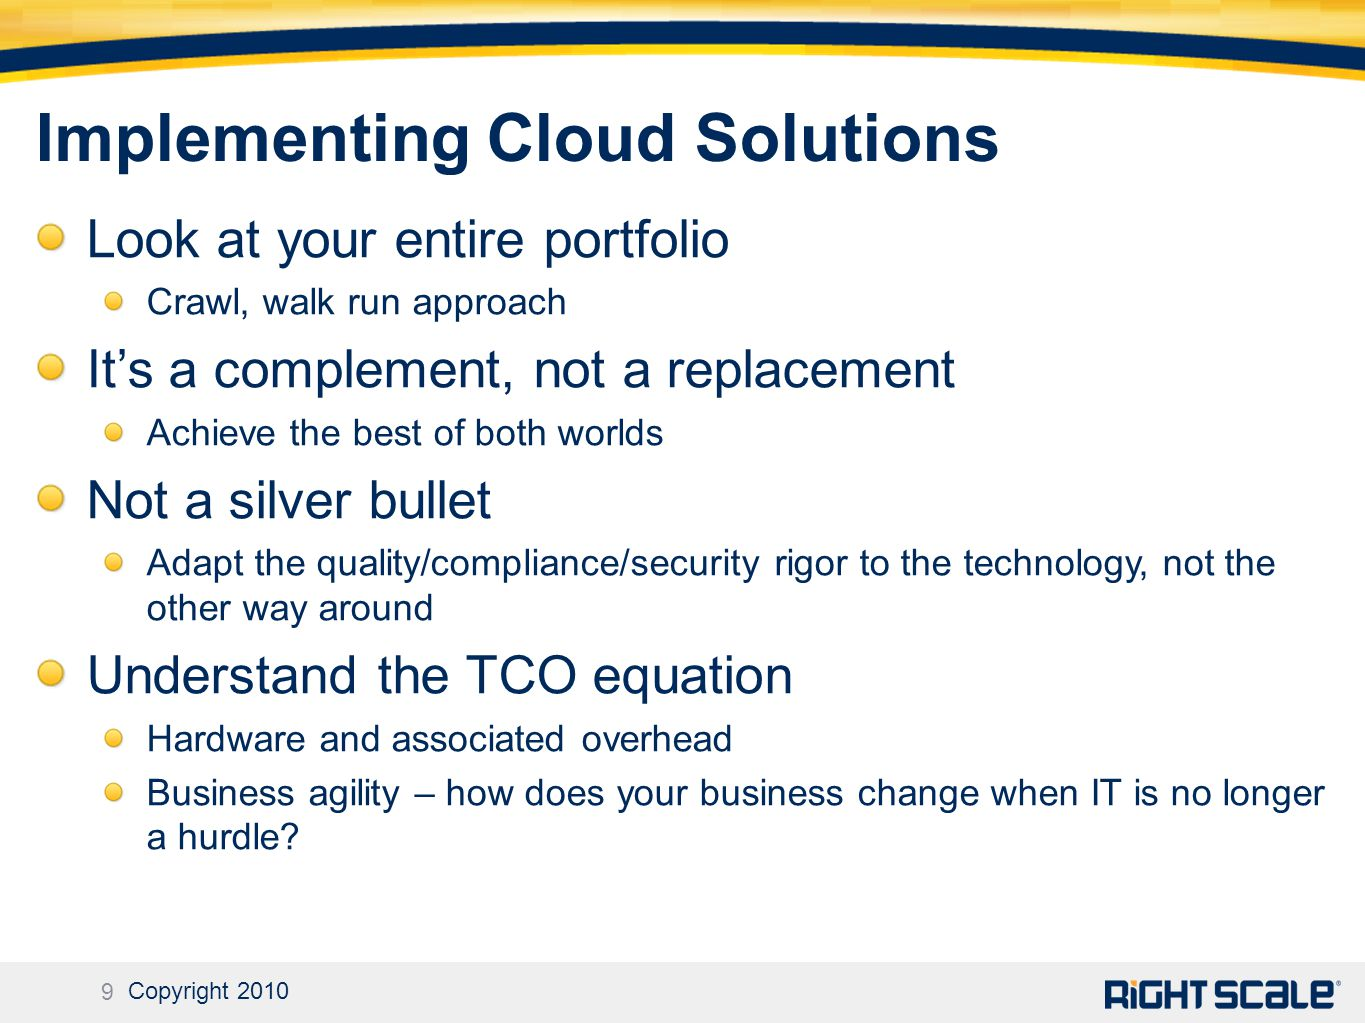 9 Copyright 2010 Implementing Cloud Solutions Look at your entire portfolio Crawl, walk run approach It's a complement, not a replacement Achieve the best of both worlds Not a silver bullet Adapt the quality/compliance/security rigor to the technology, not the other way around Understand the TCO equation Hardware and associated overhead Business agility – how does your business change when IT is no longer a hurdle